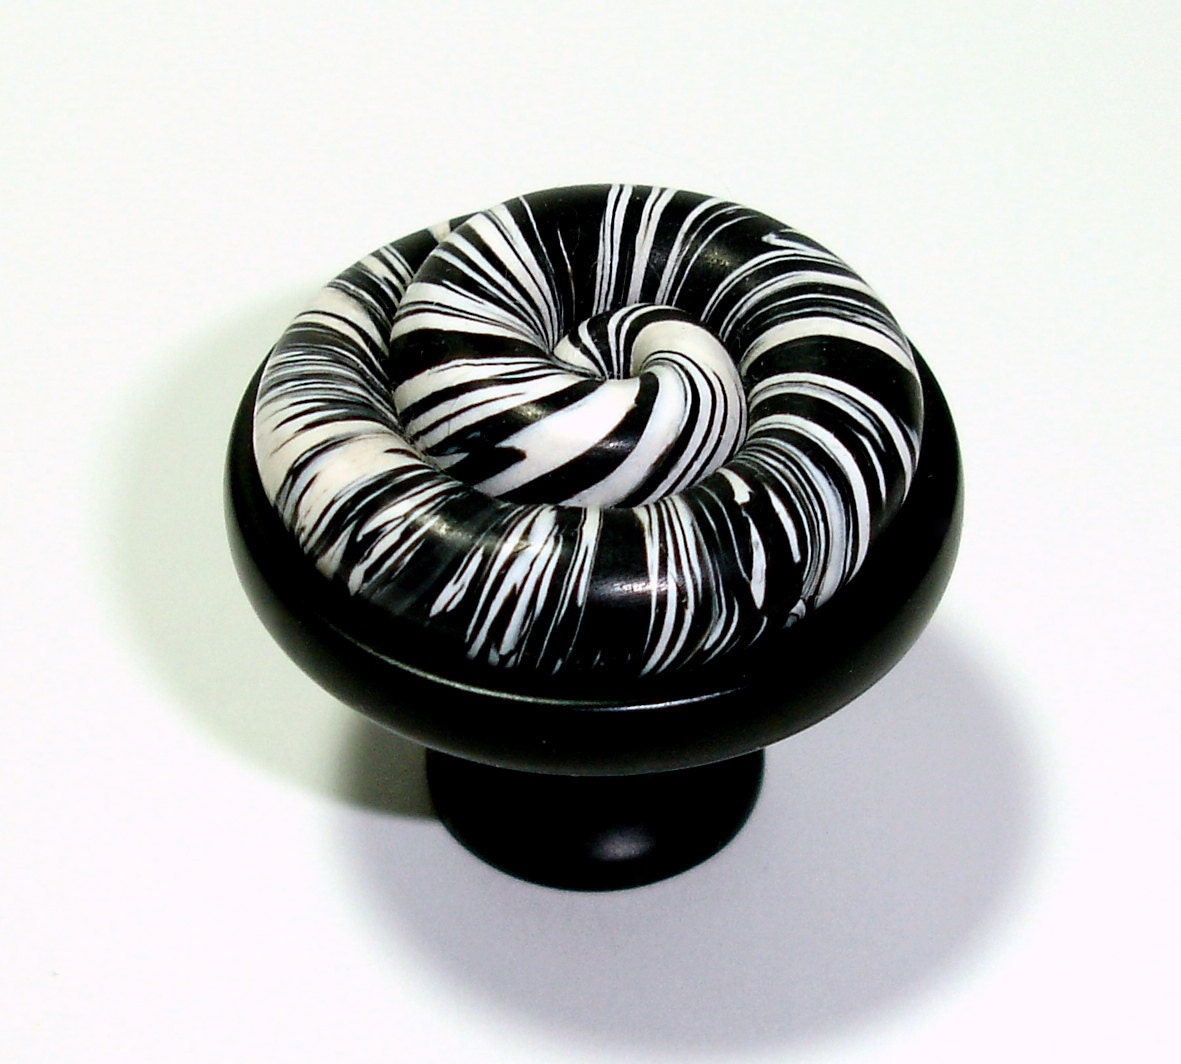 Black white spiral cabinet knobs by outrageous knobs ccb288 Black knobs on white cabinets